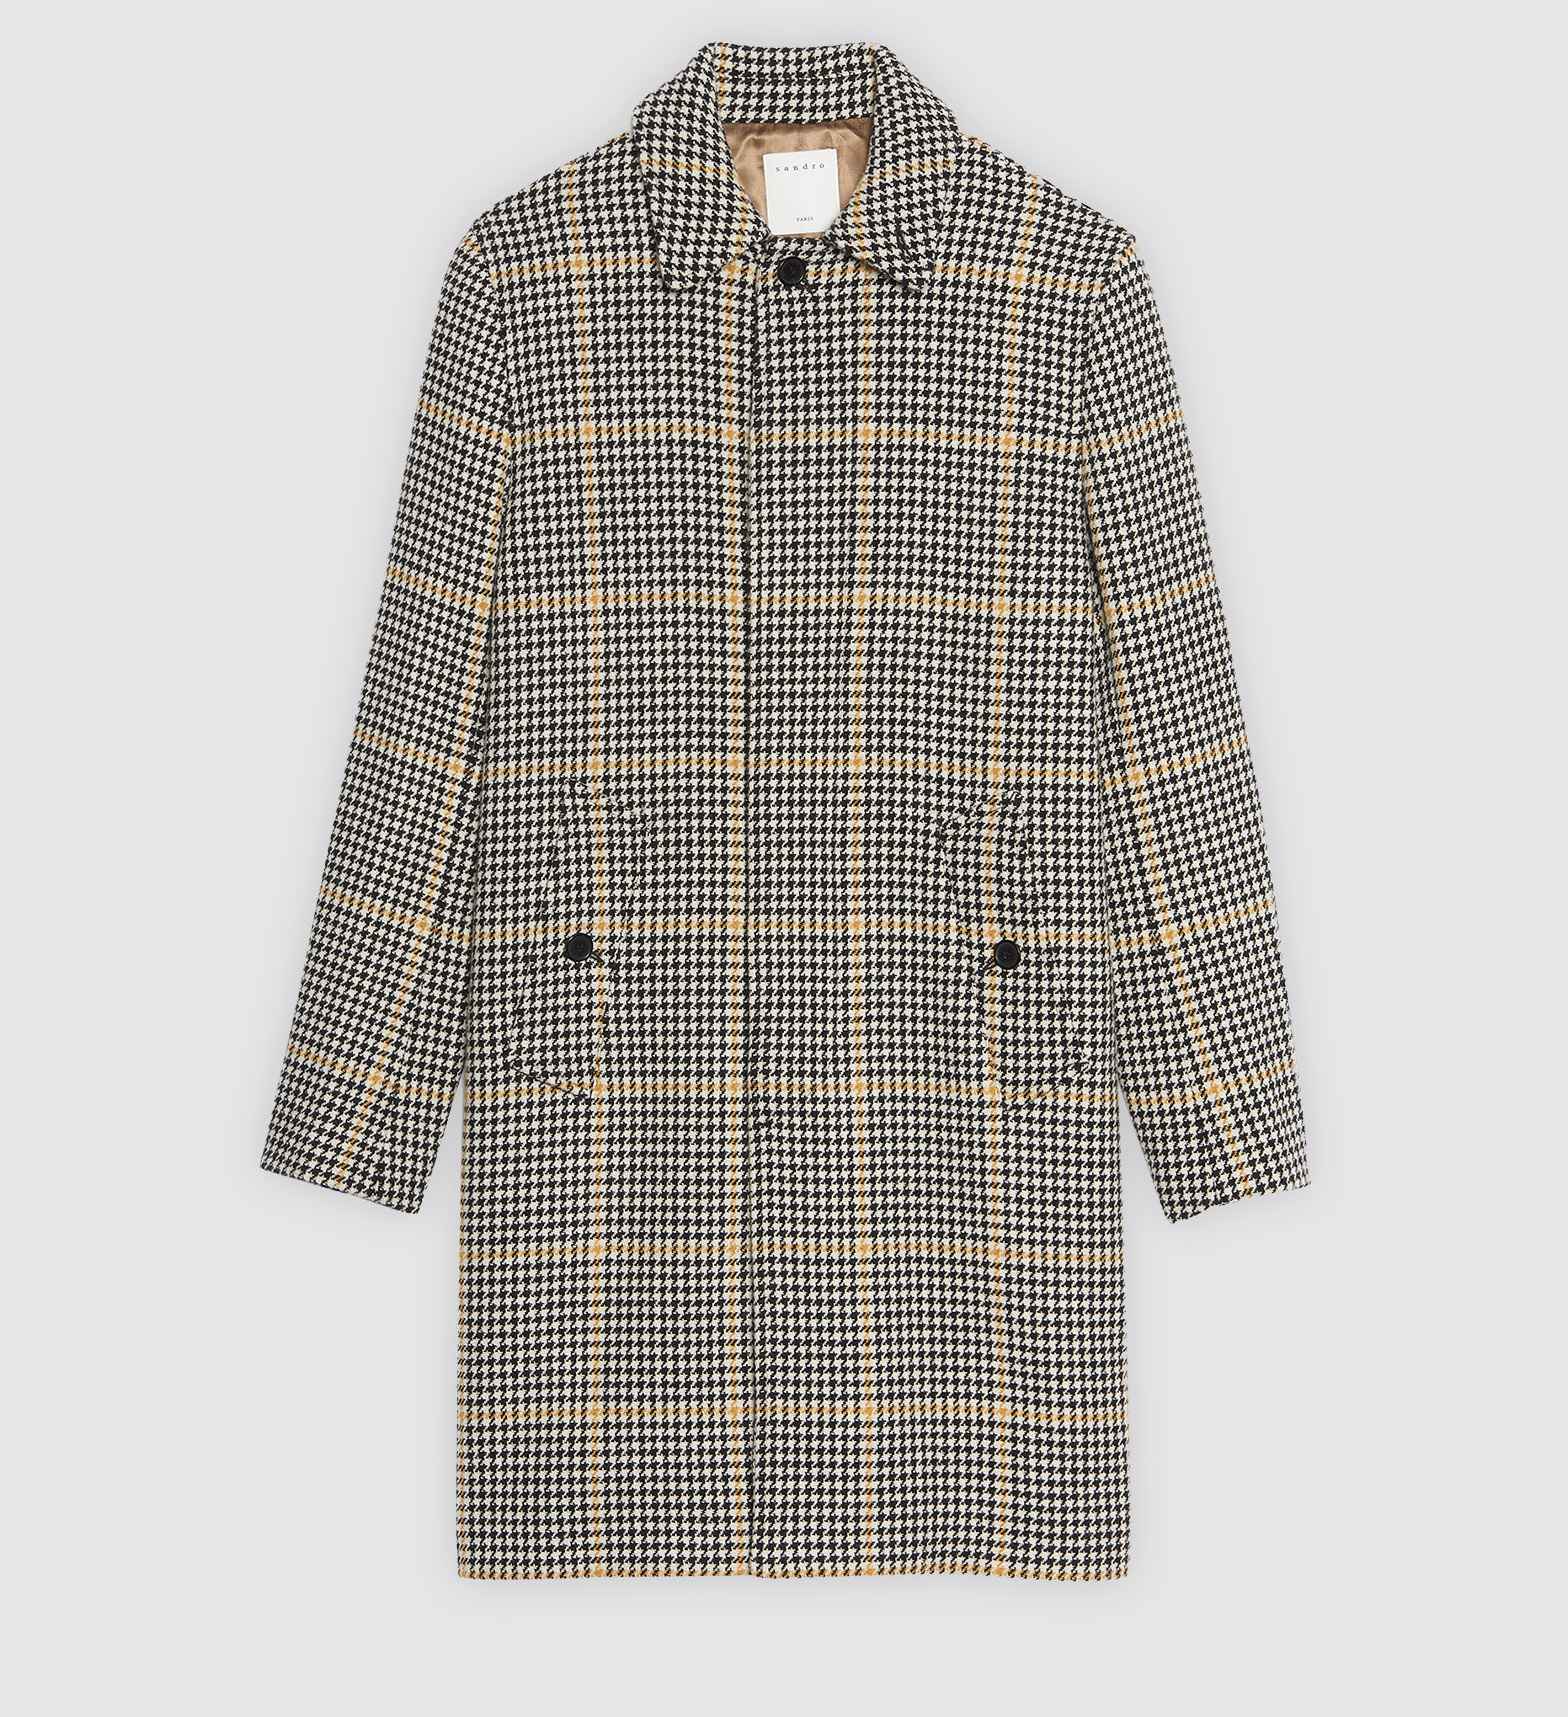 $575 - Sandro Checked coat   Same length as the A.P.C. coat, but definitely more of a statement piece! I've loved plaid this season and love the combo of the small plaid and the larger plaid. SO GOOD! And it's on SALE!